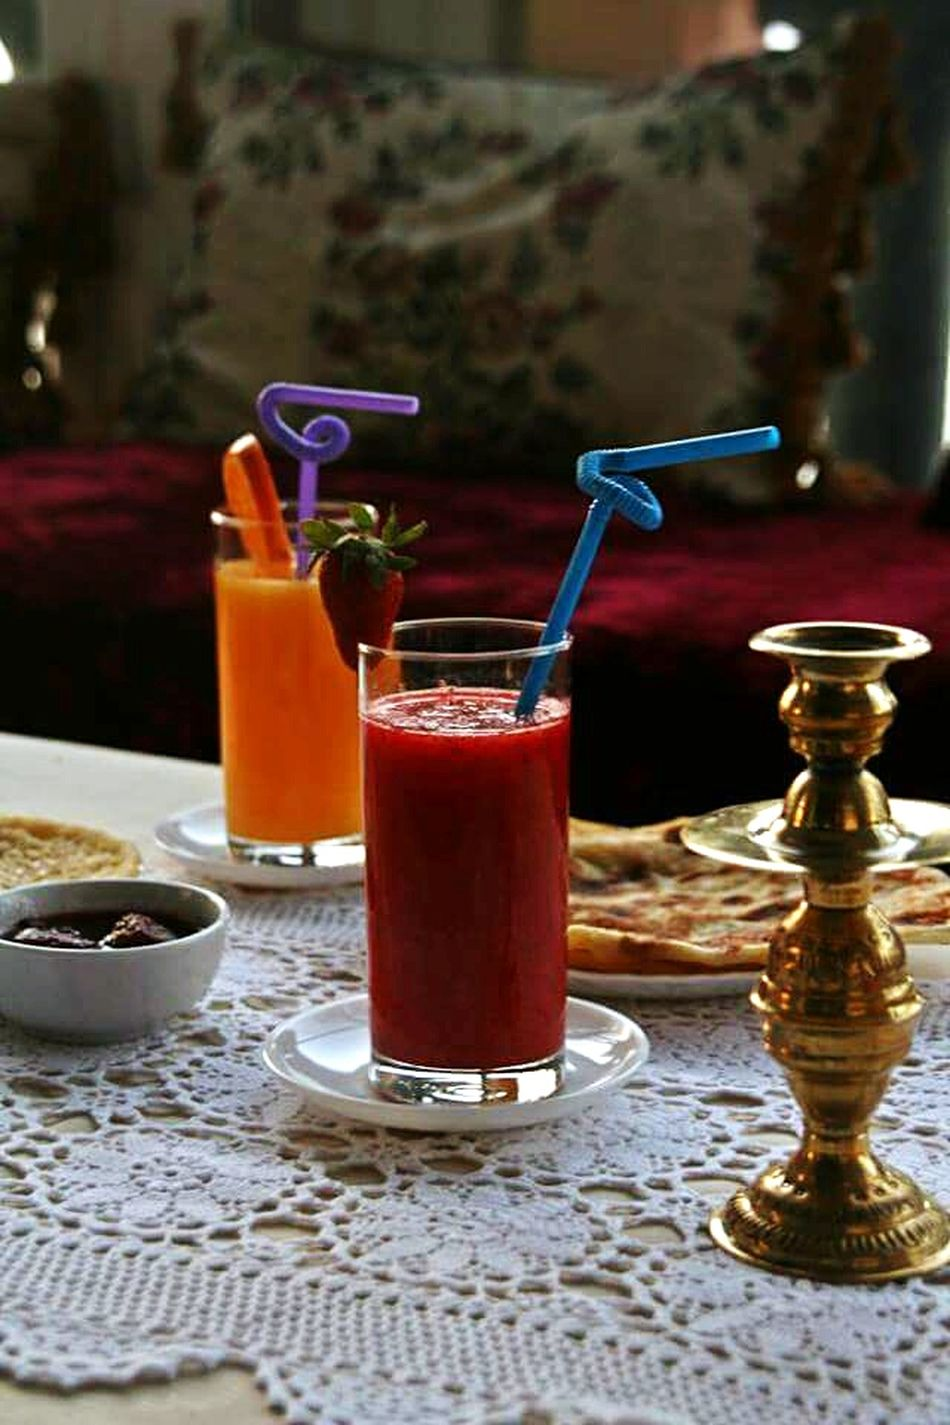 Arabic Drink Food And Drink Drinking Glass Bottle Refreshment Healthy Eating Table Cocktail No People Indoors  Citrus Fruit Fruit Food Freshness Ready-to-eat Day Close-up Blood Orange